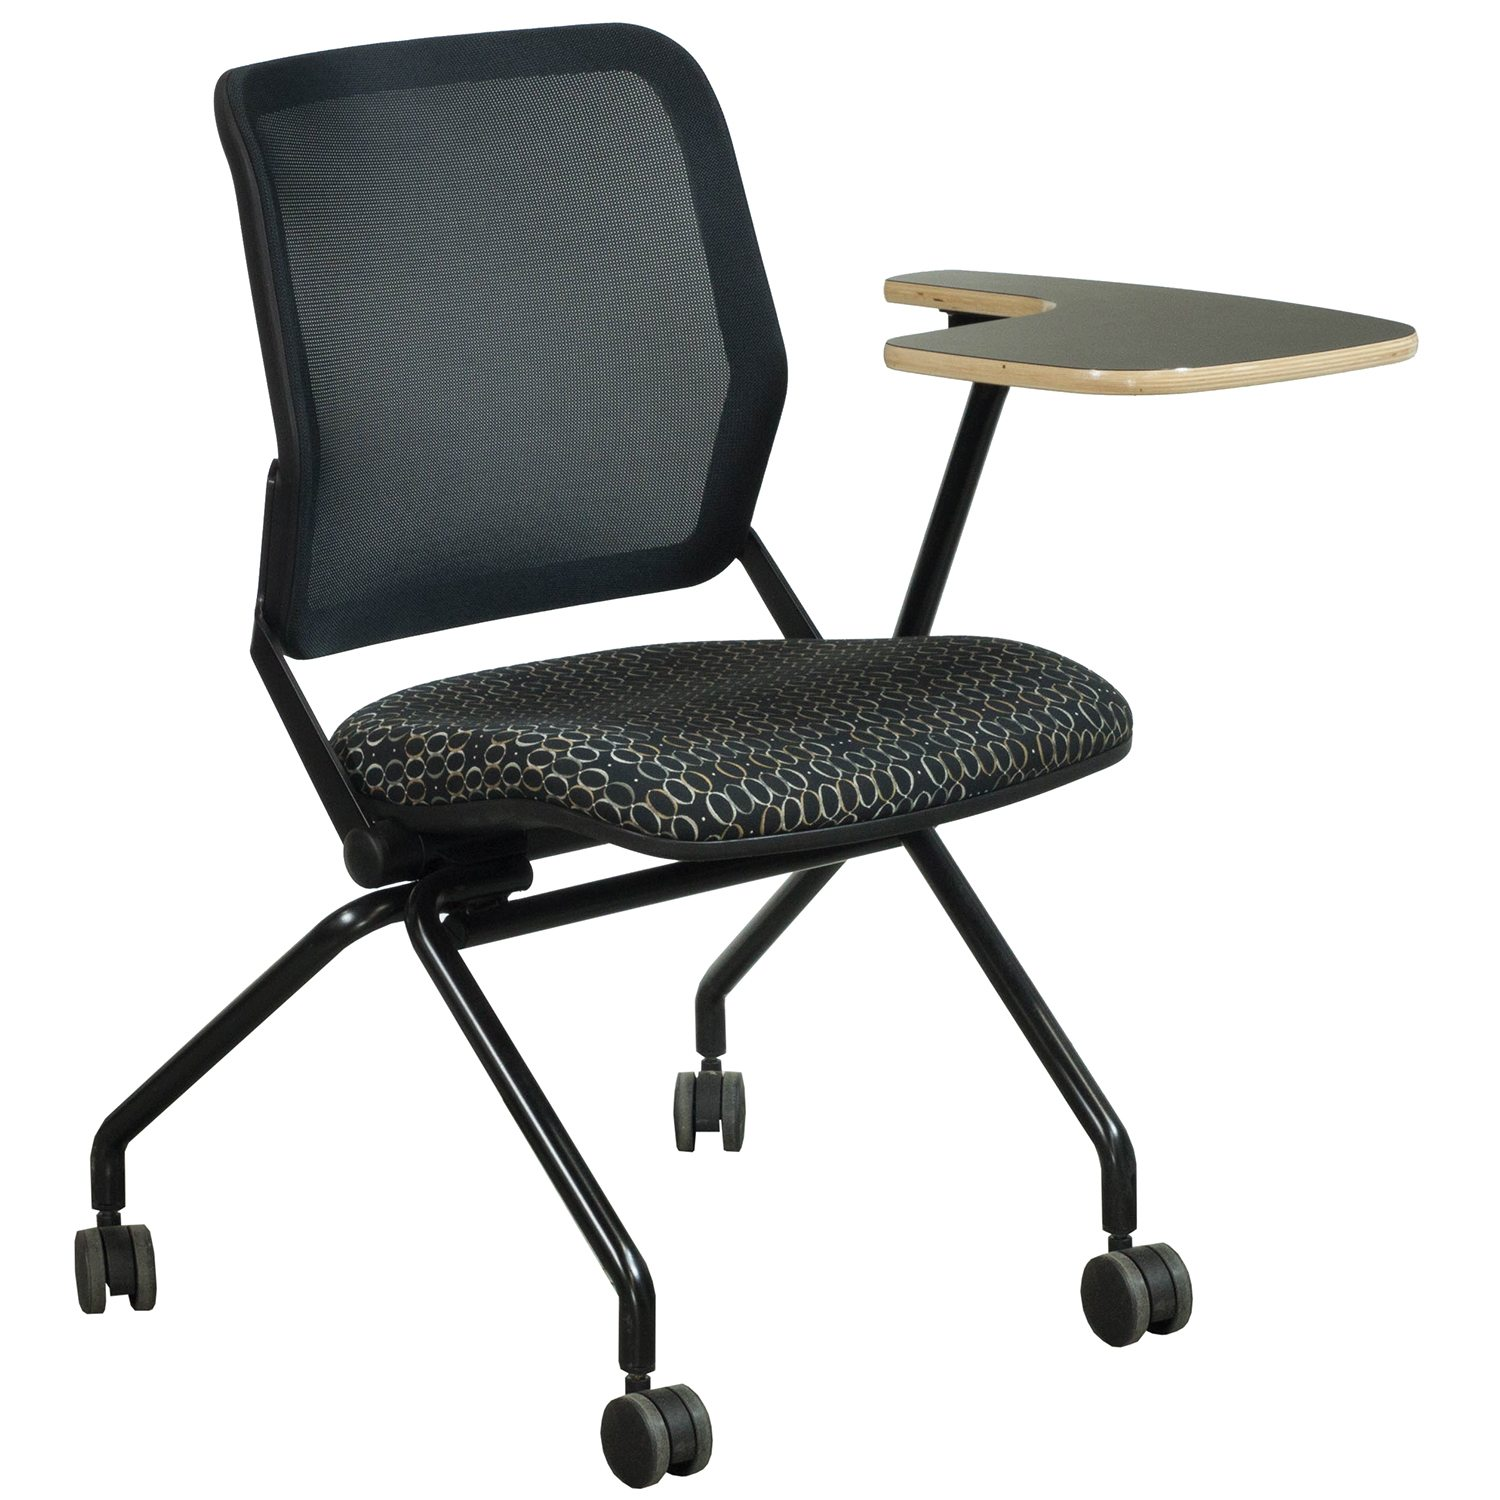 Ki Chairs Ki Torsion Air Used Nesting Left Tablet Chair Black